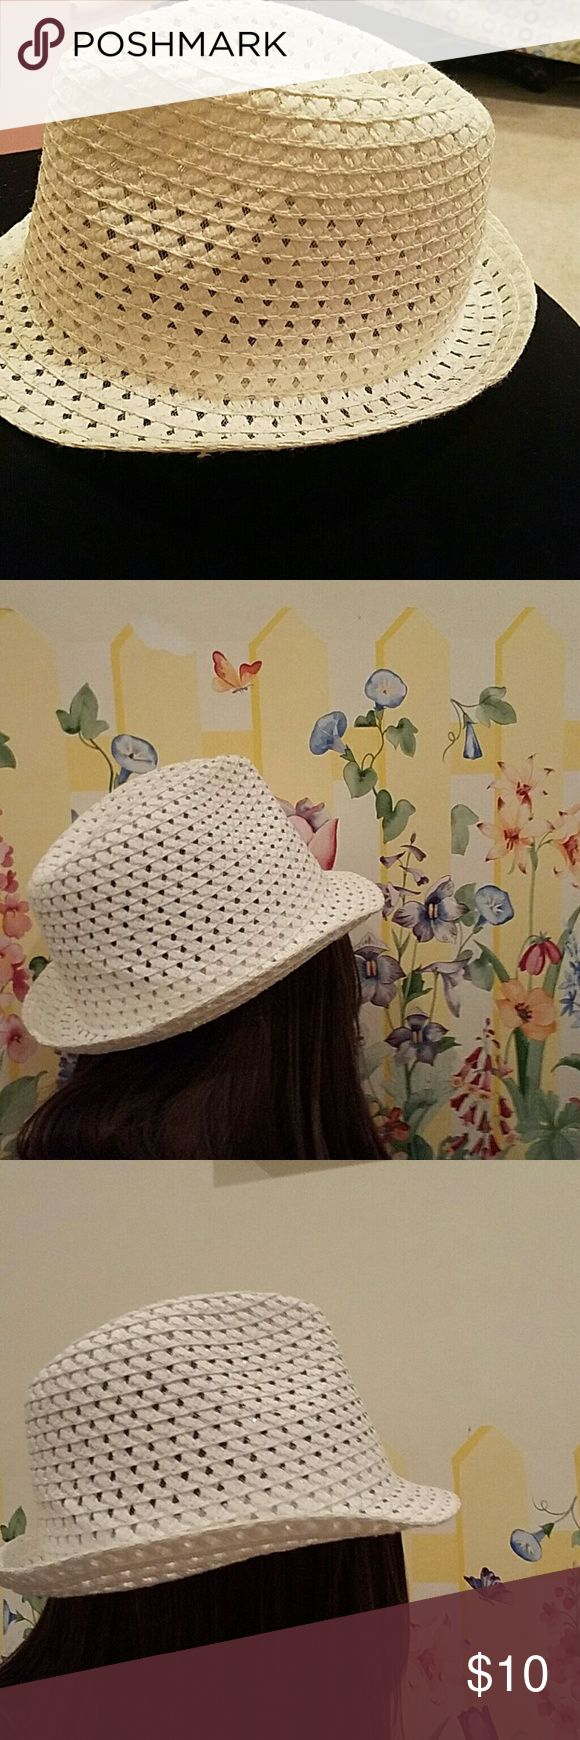 White fedora hat White, woven look Accessories Hats